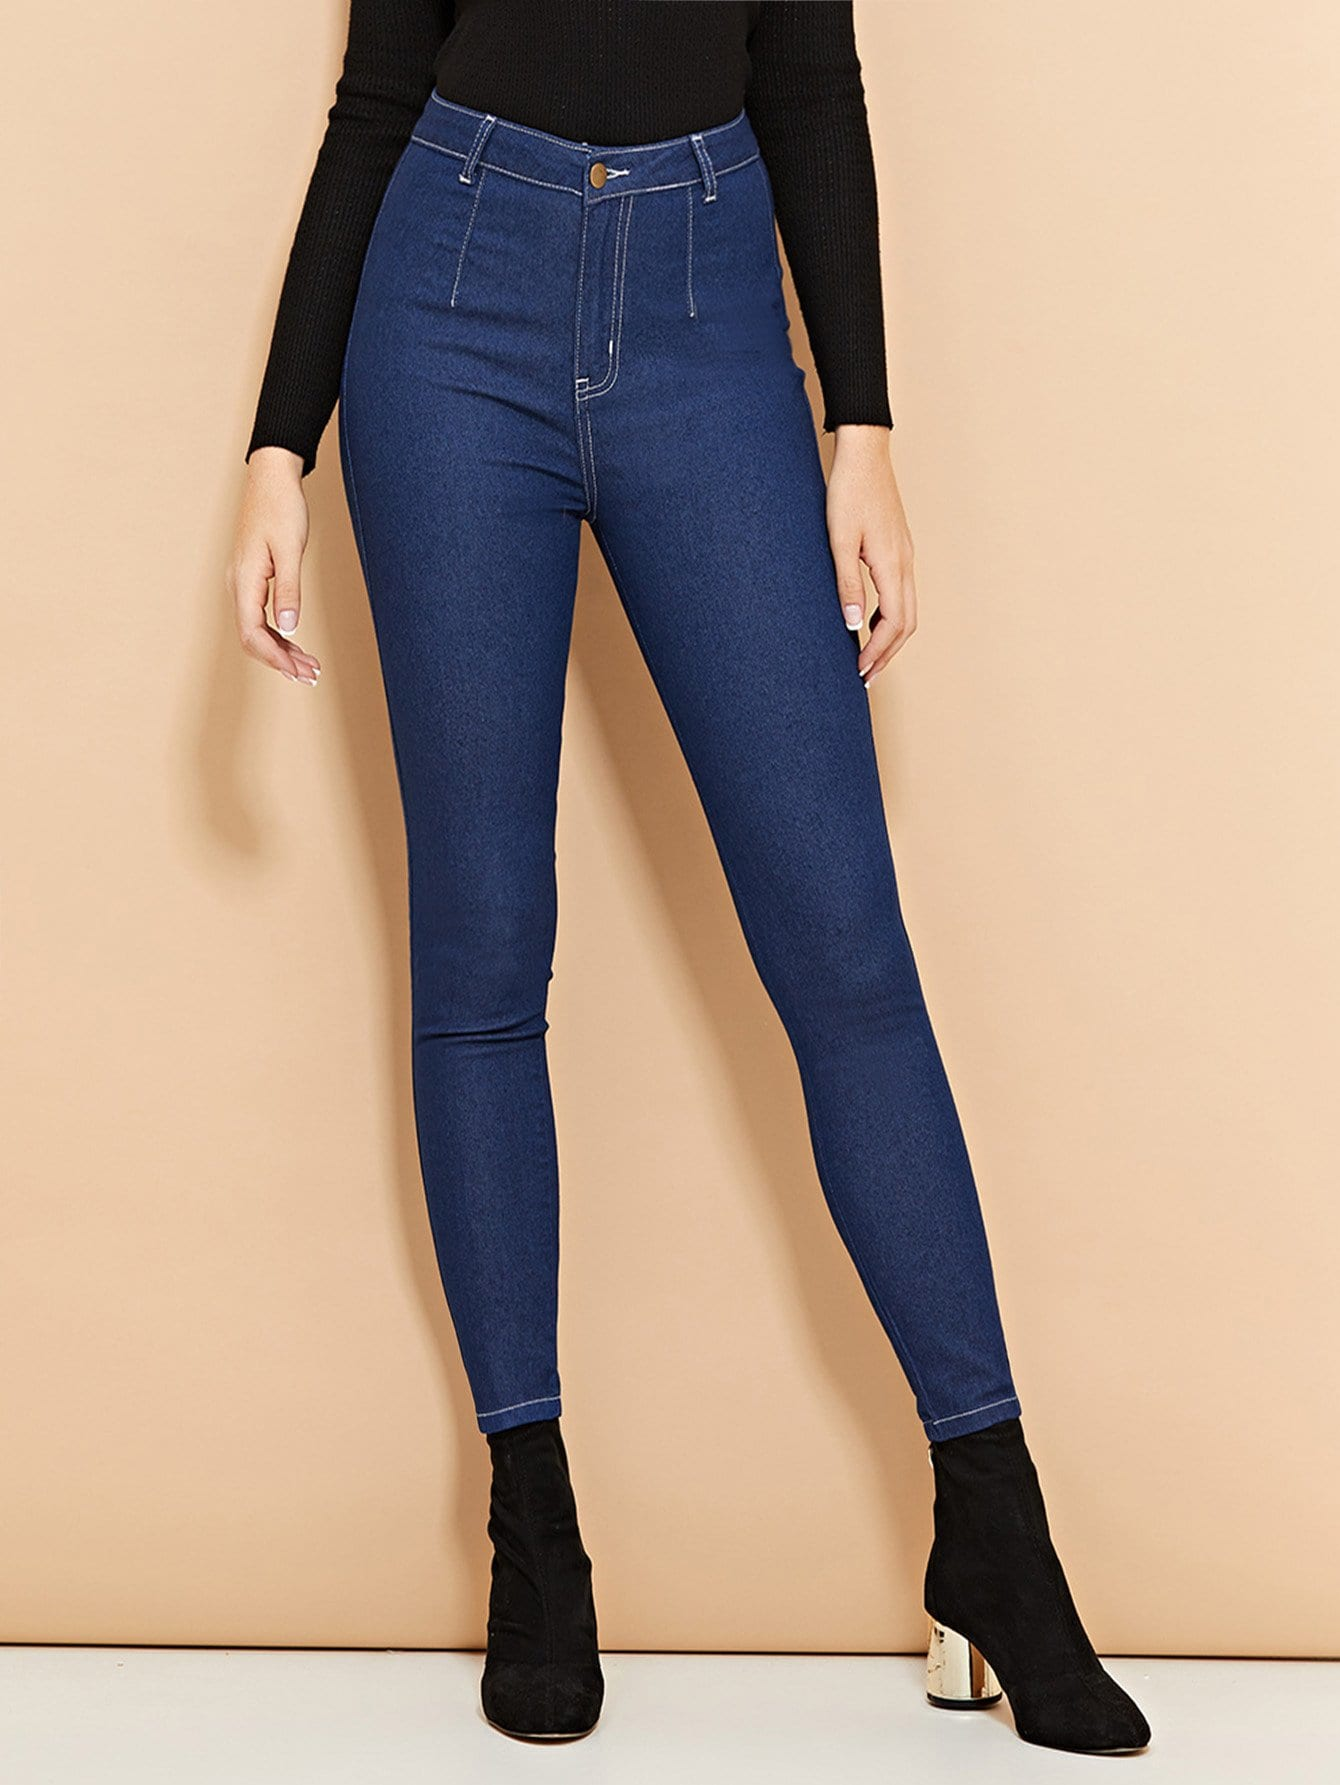 Buttoned Skinny Jeans - hashtag